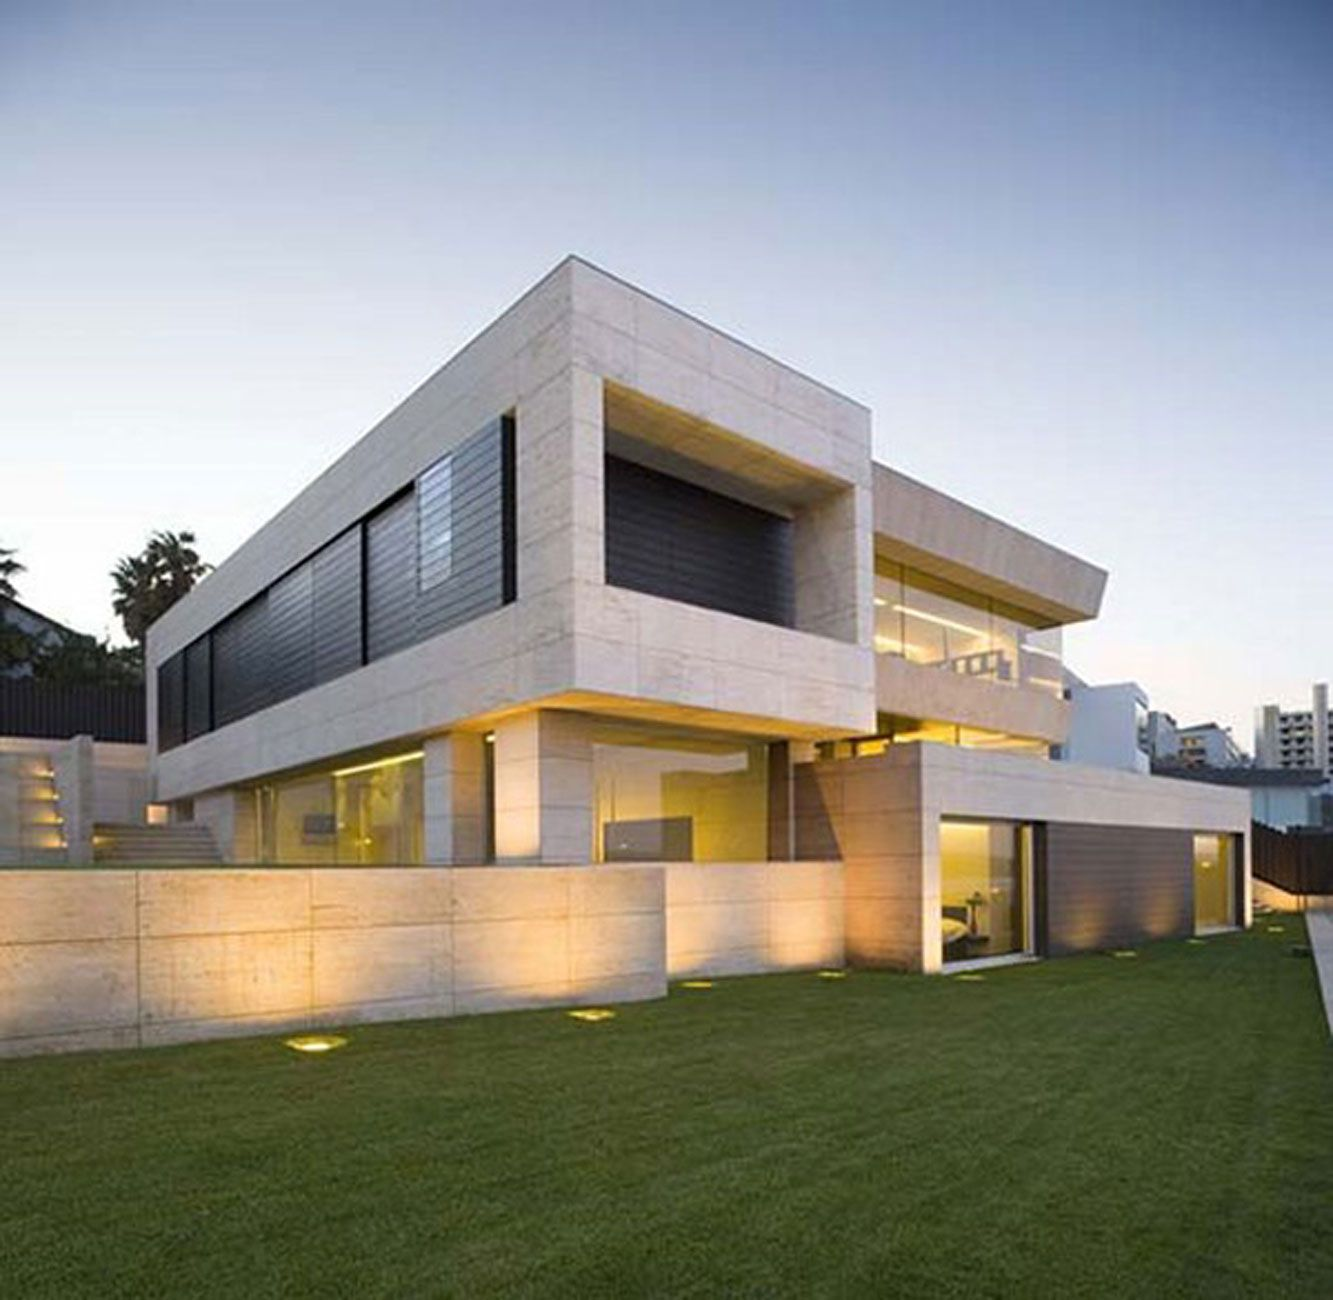 Modern Glass House Design In Cliff Side Of Galicia Spain Architecture 1333x1300 Pixels